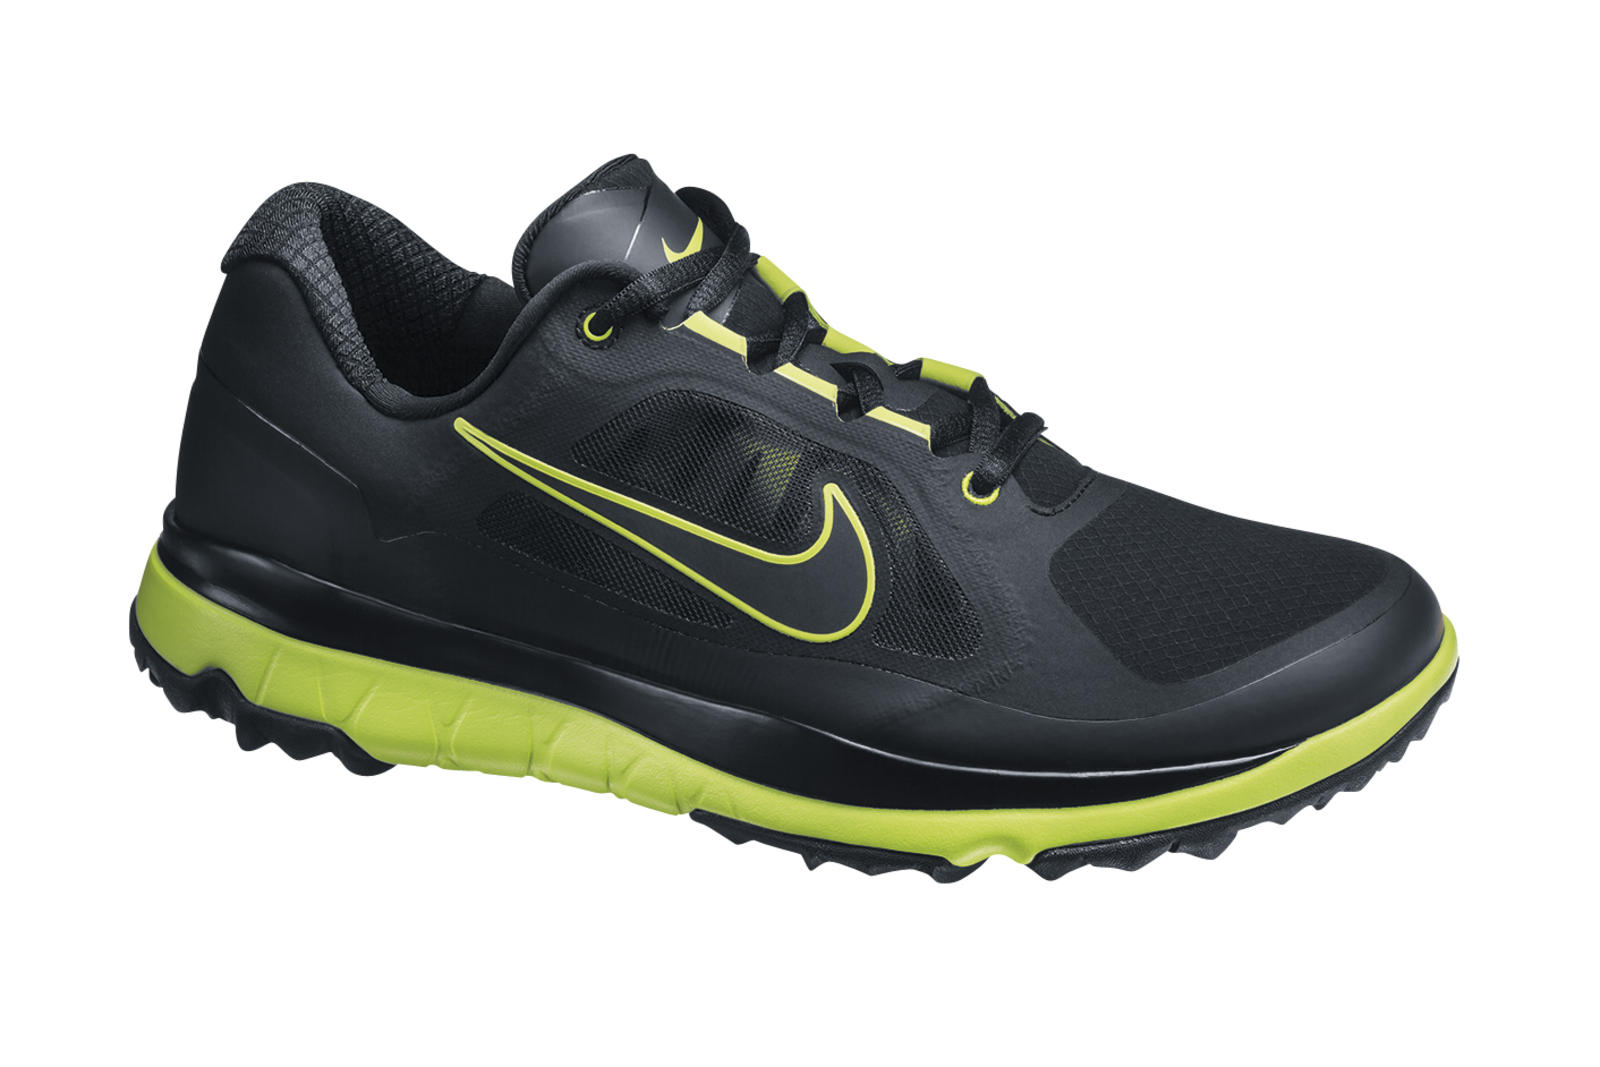 Nike Fi Impact Golf Shoes Amazon